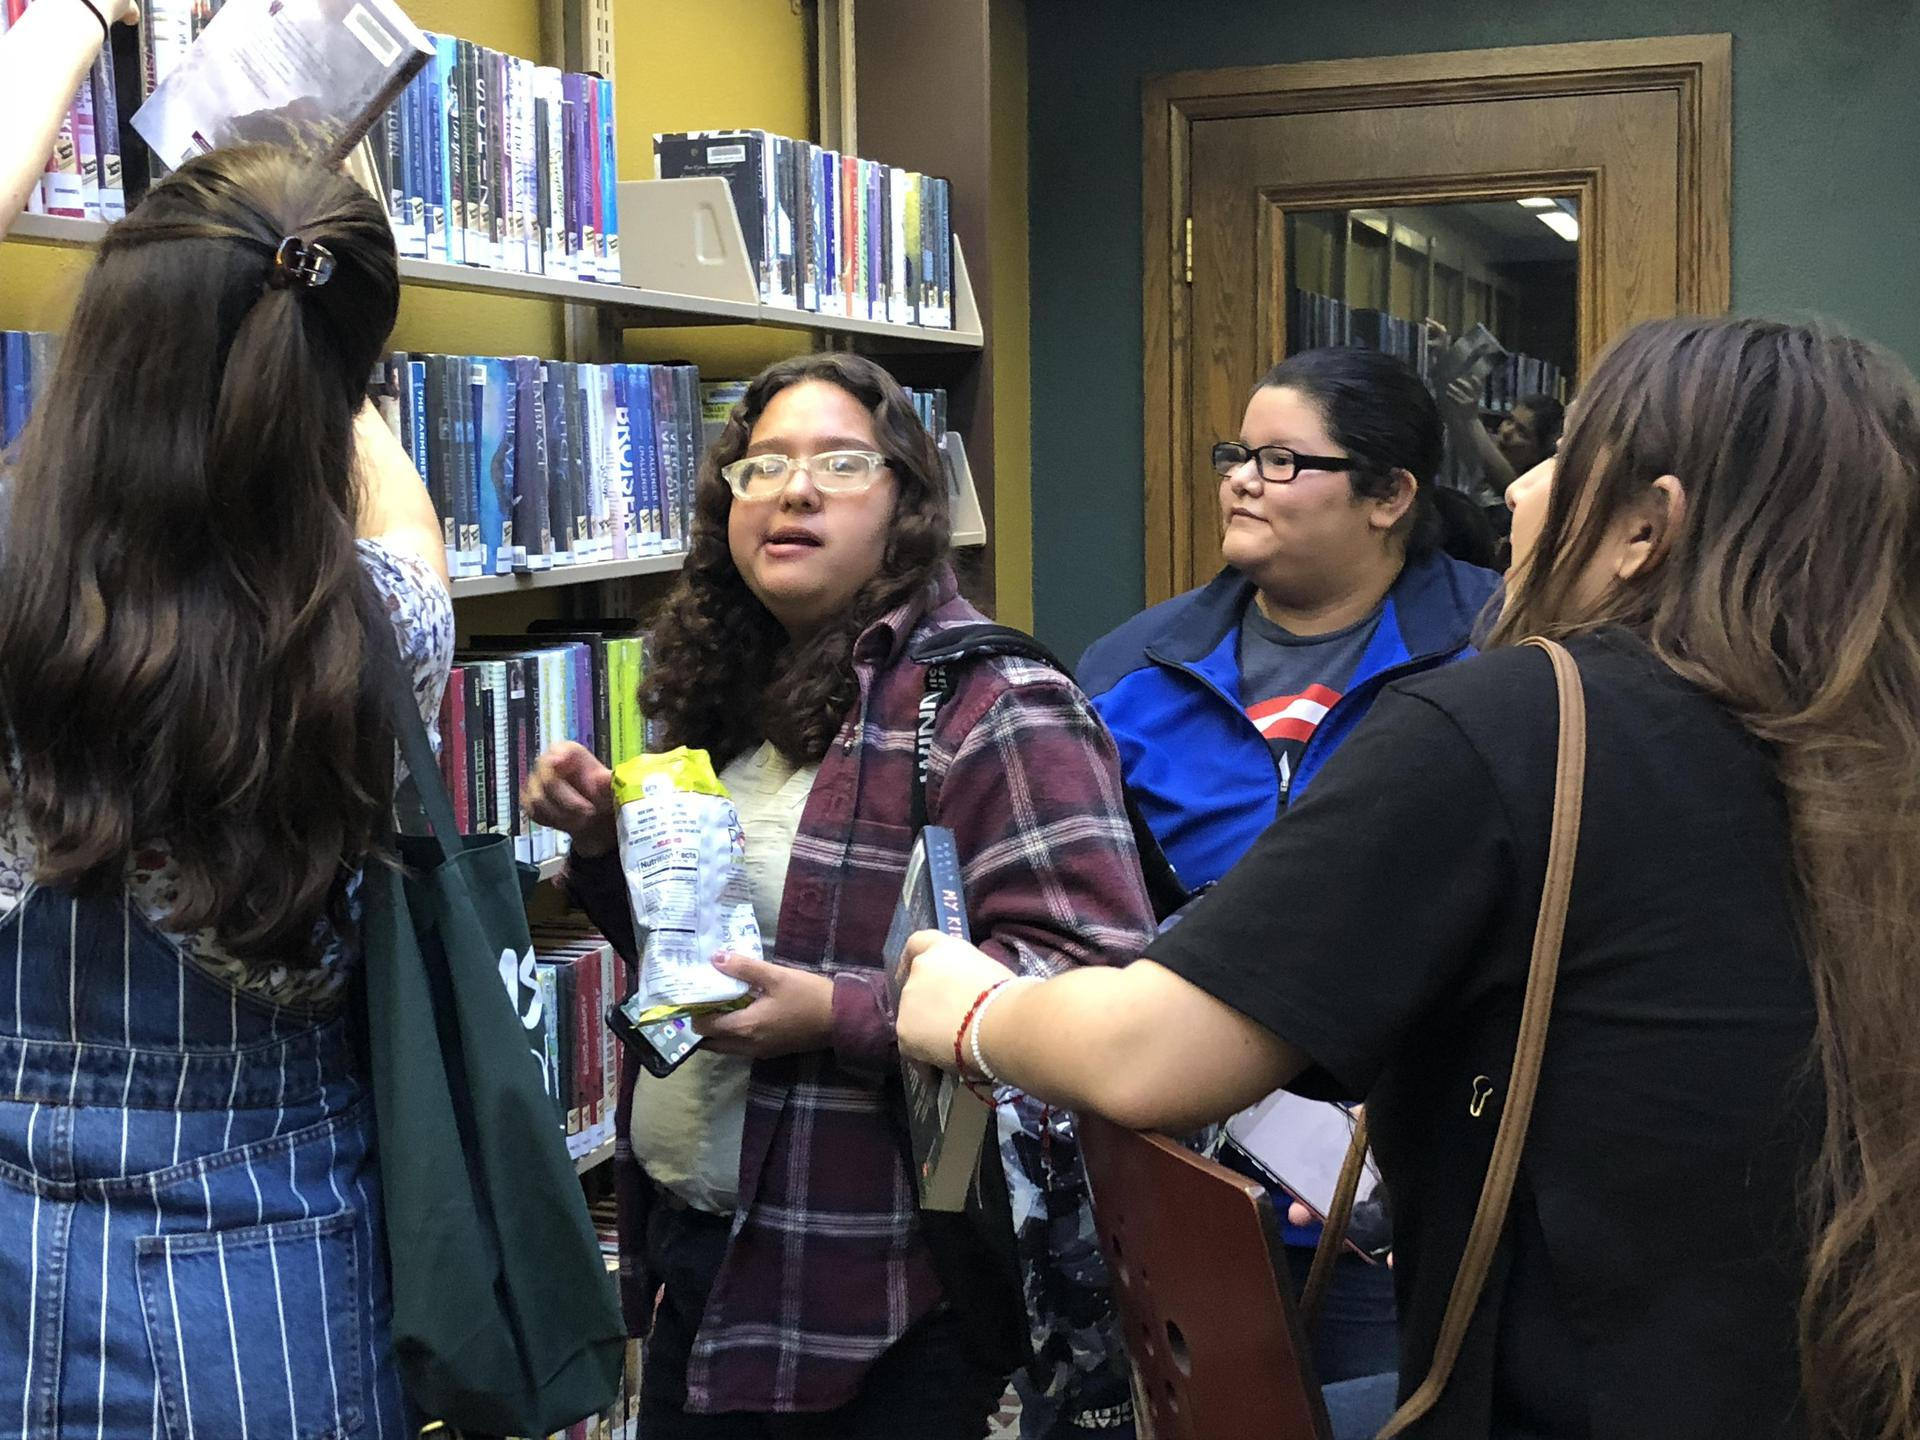 Checking out books in Teen Central